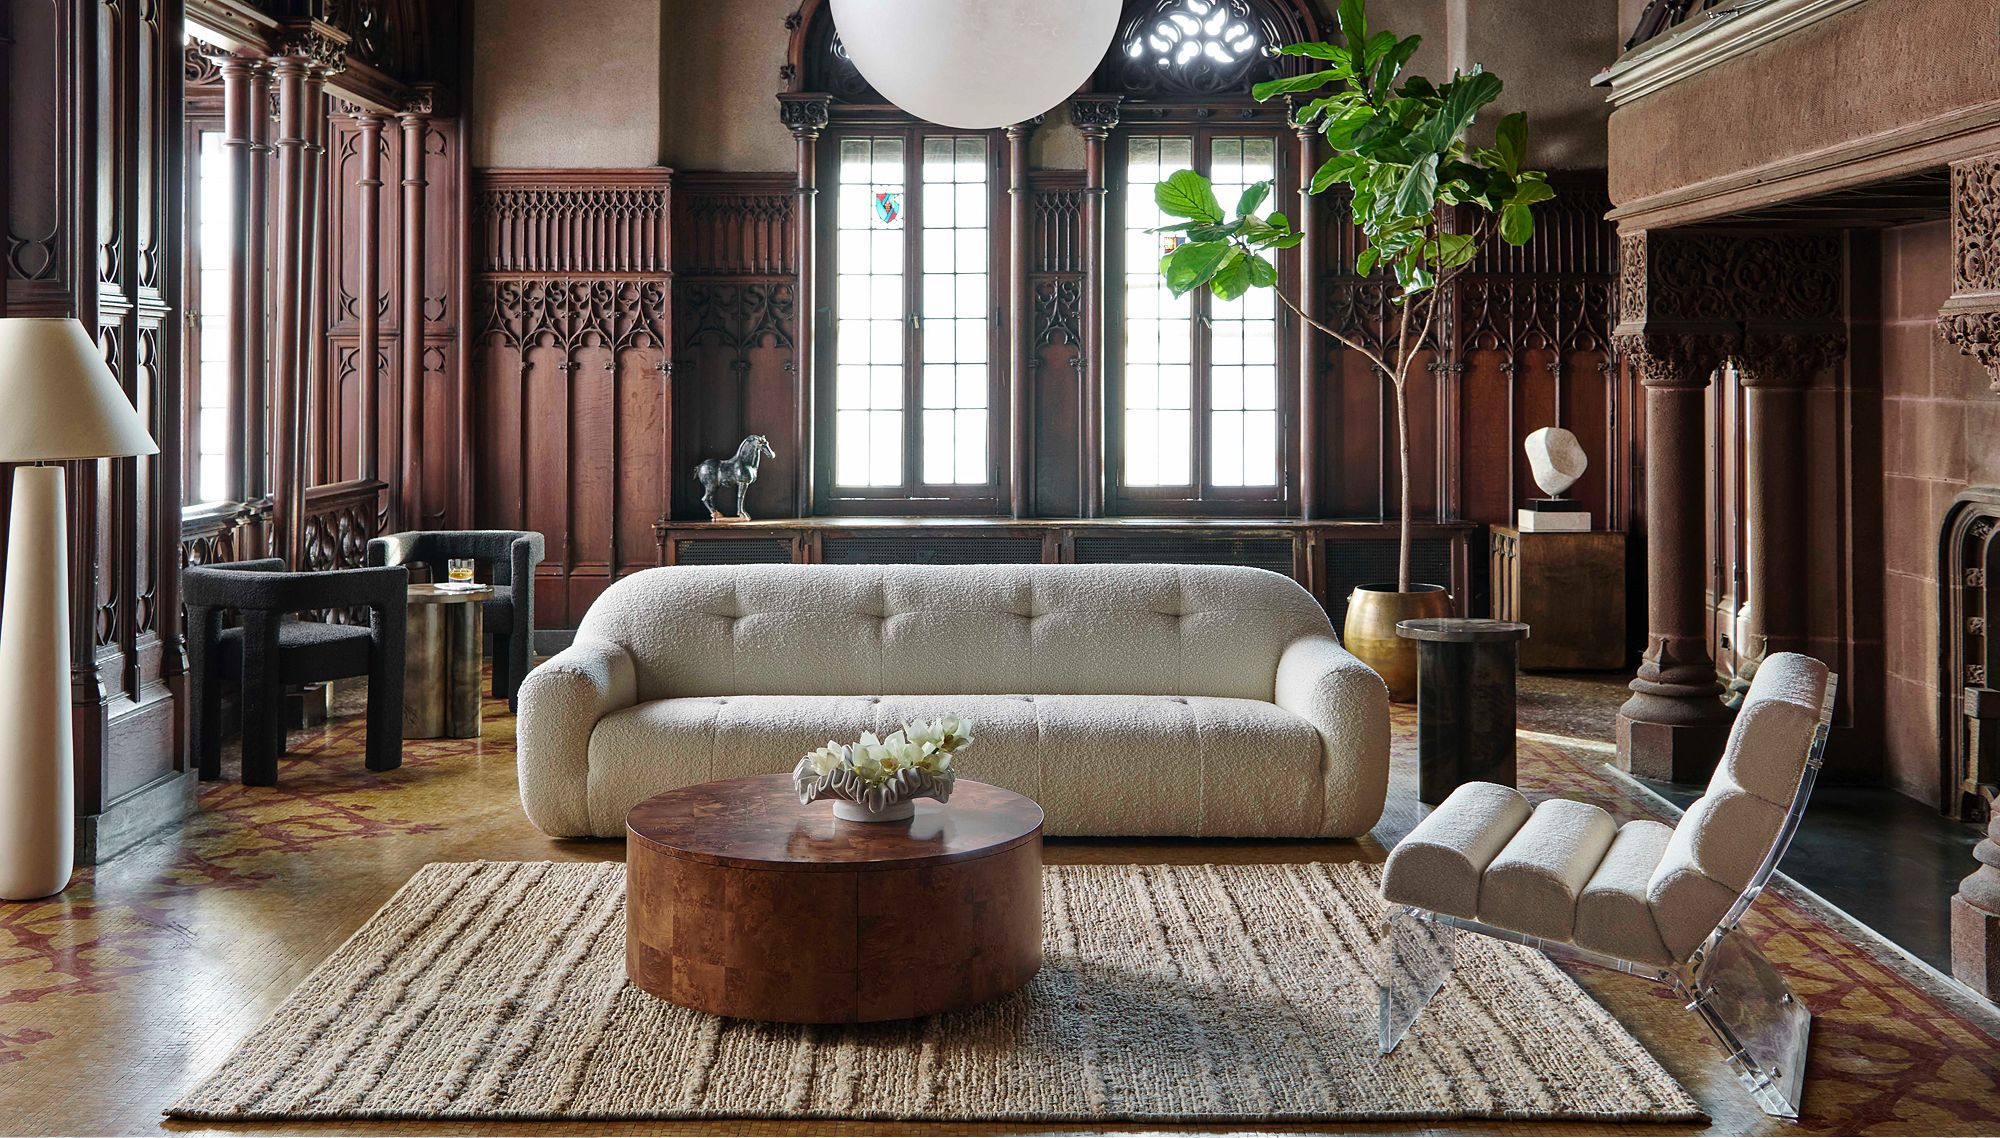 Textured sofa and round coffee table in a living room paneled with dark wood, plus gothic windows and a large fireplace